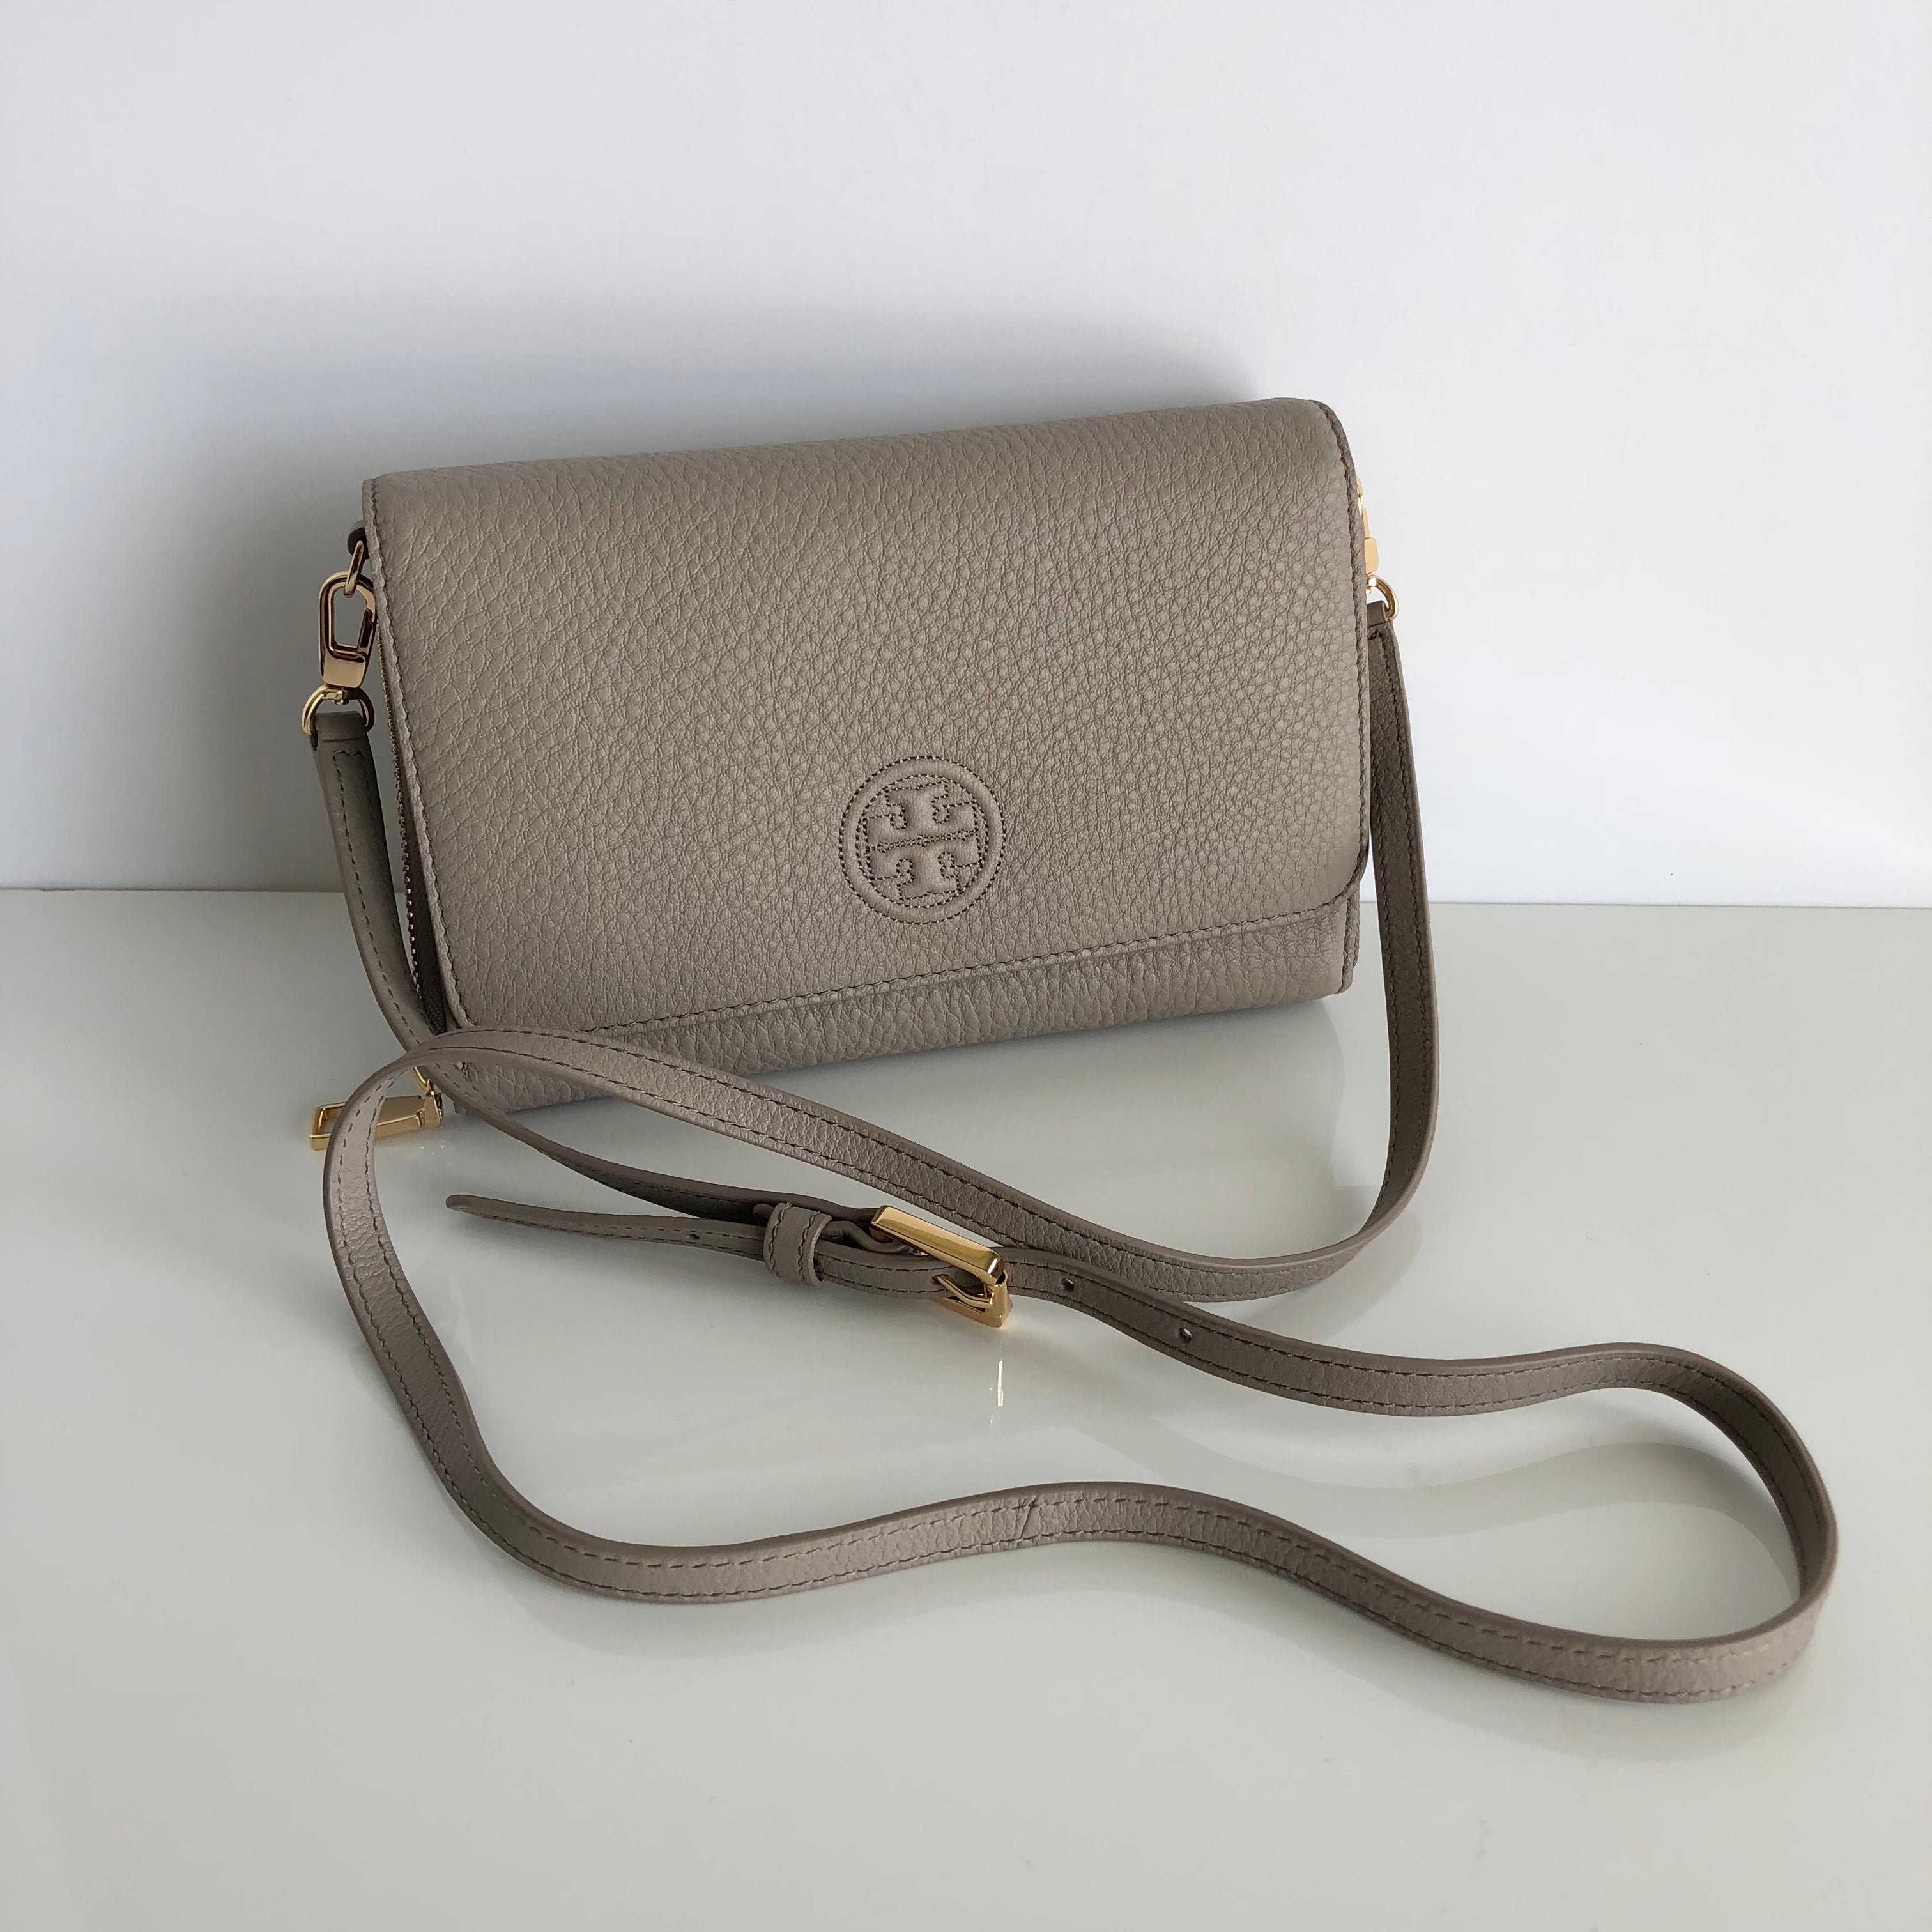 Authentic TORY BURCH Bombe Flat Wallet Crossbody